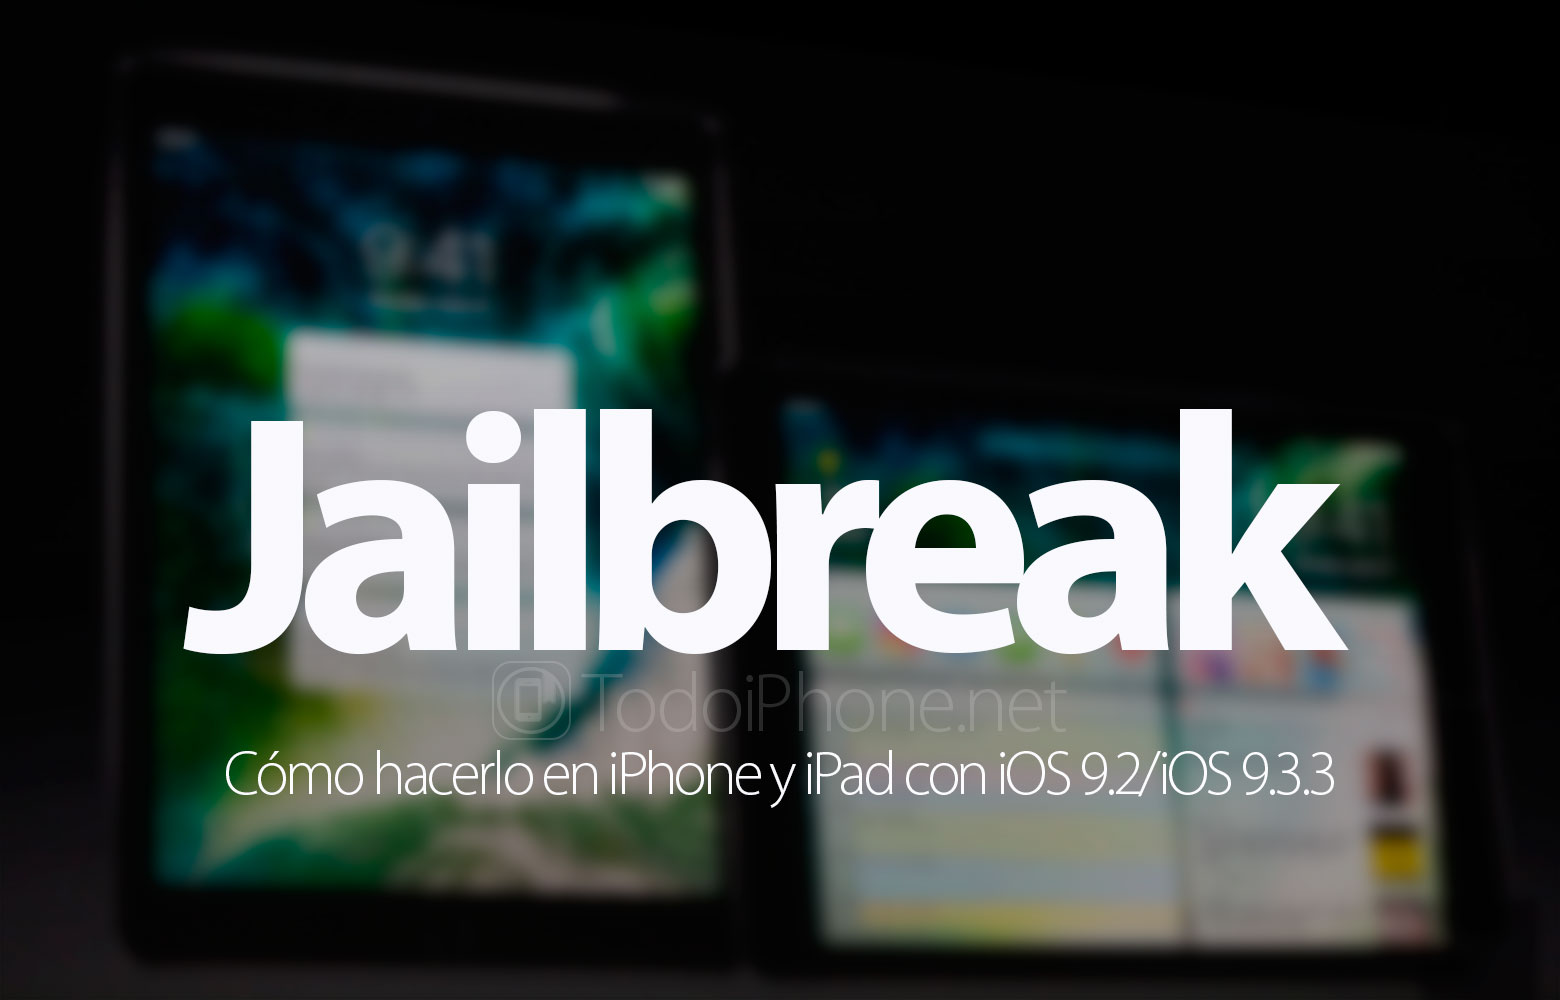 hacer-jailbreak-ios-9-2-9-3-3-windows